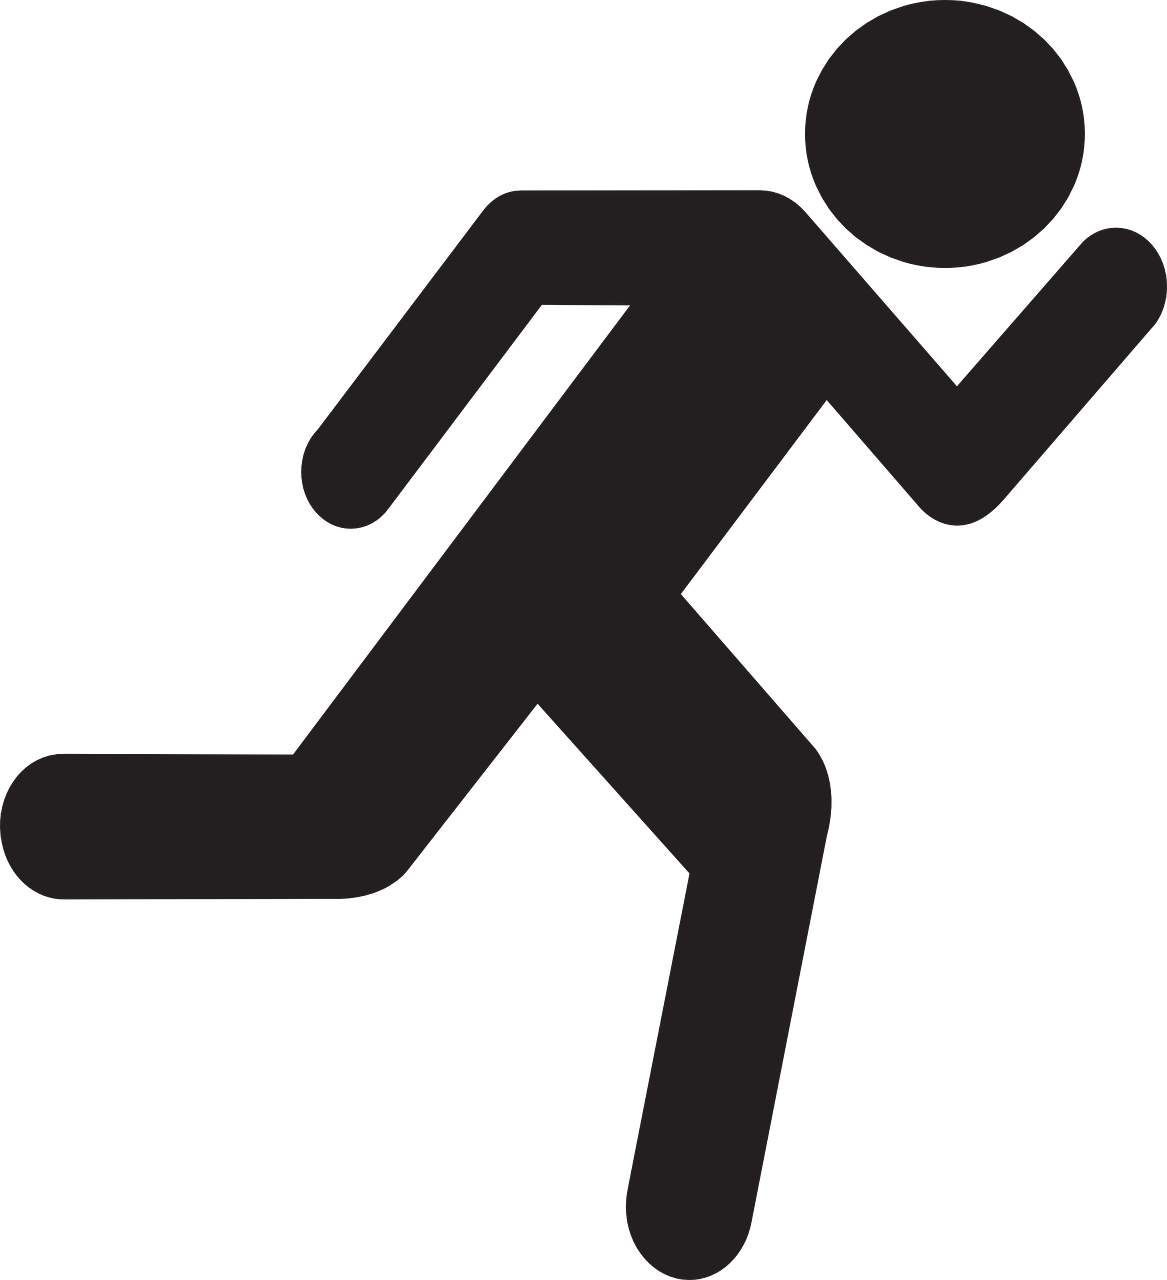 File:Runner stickman.png - PNG HD Of Stick Figures